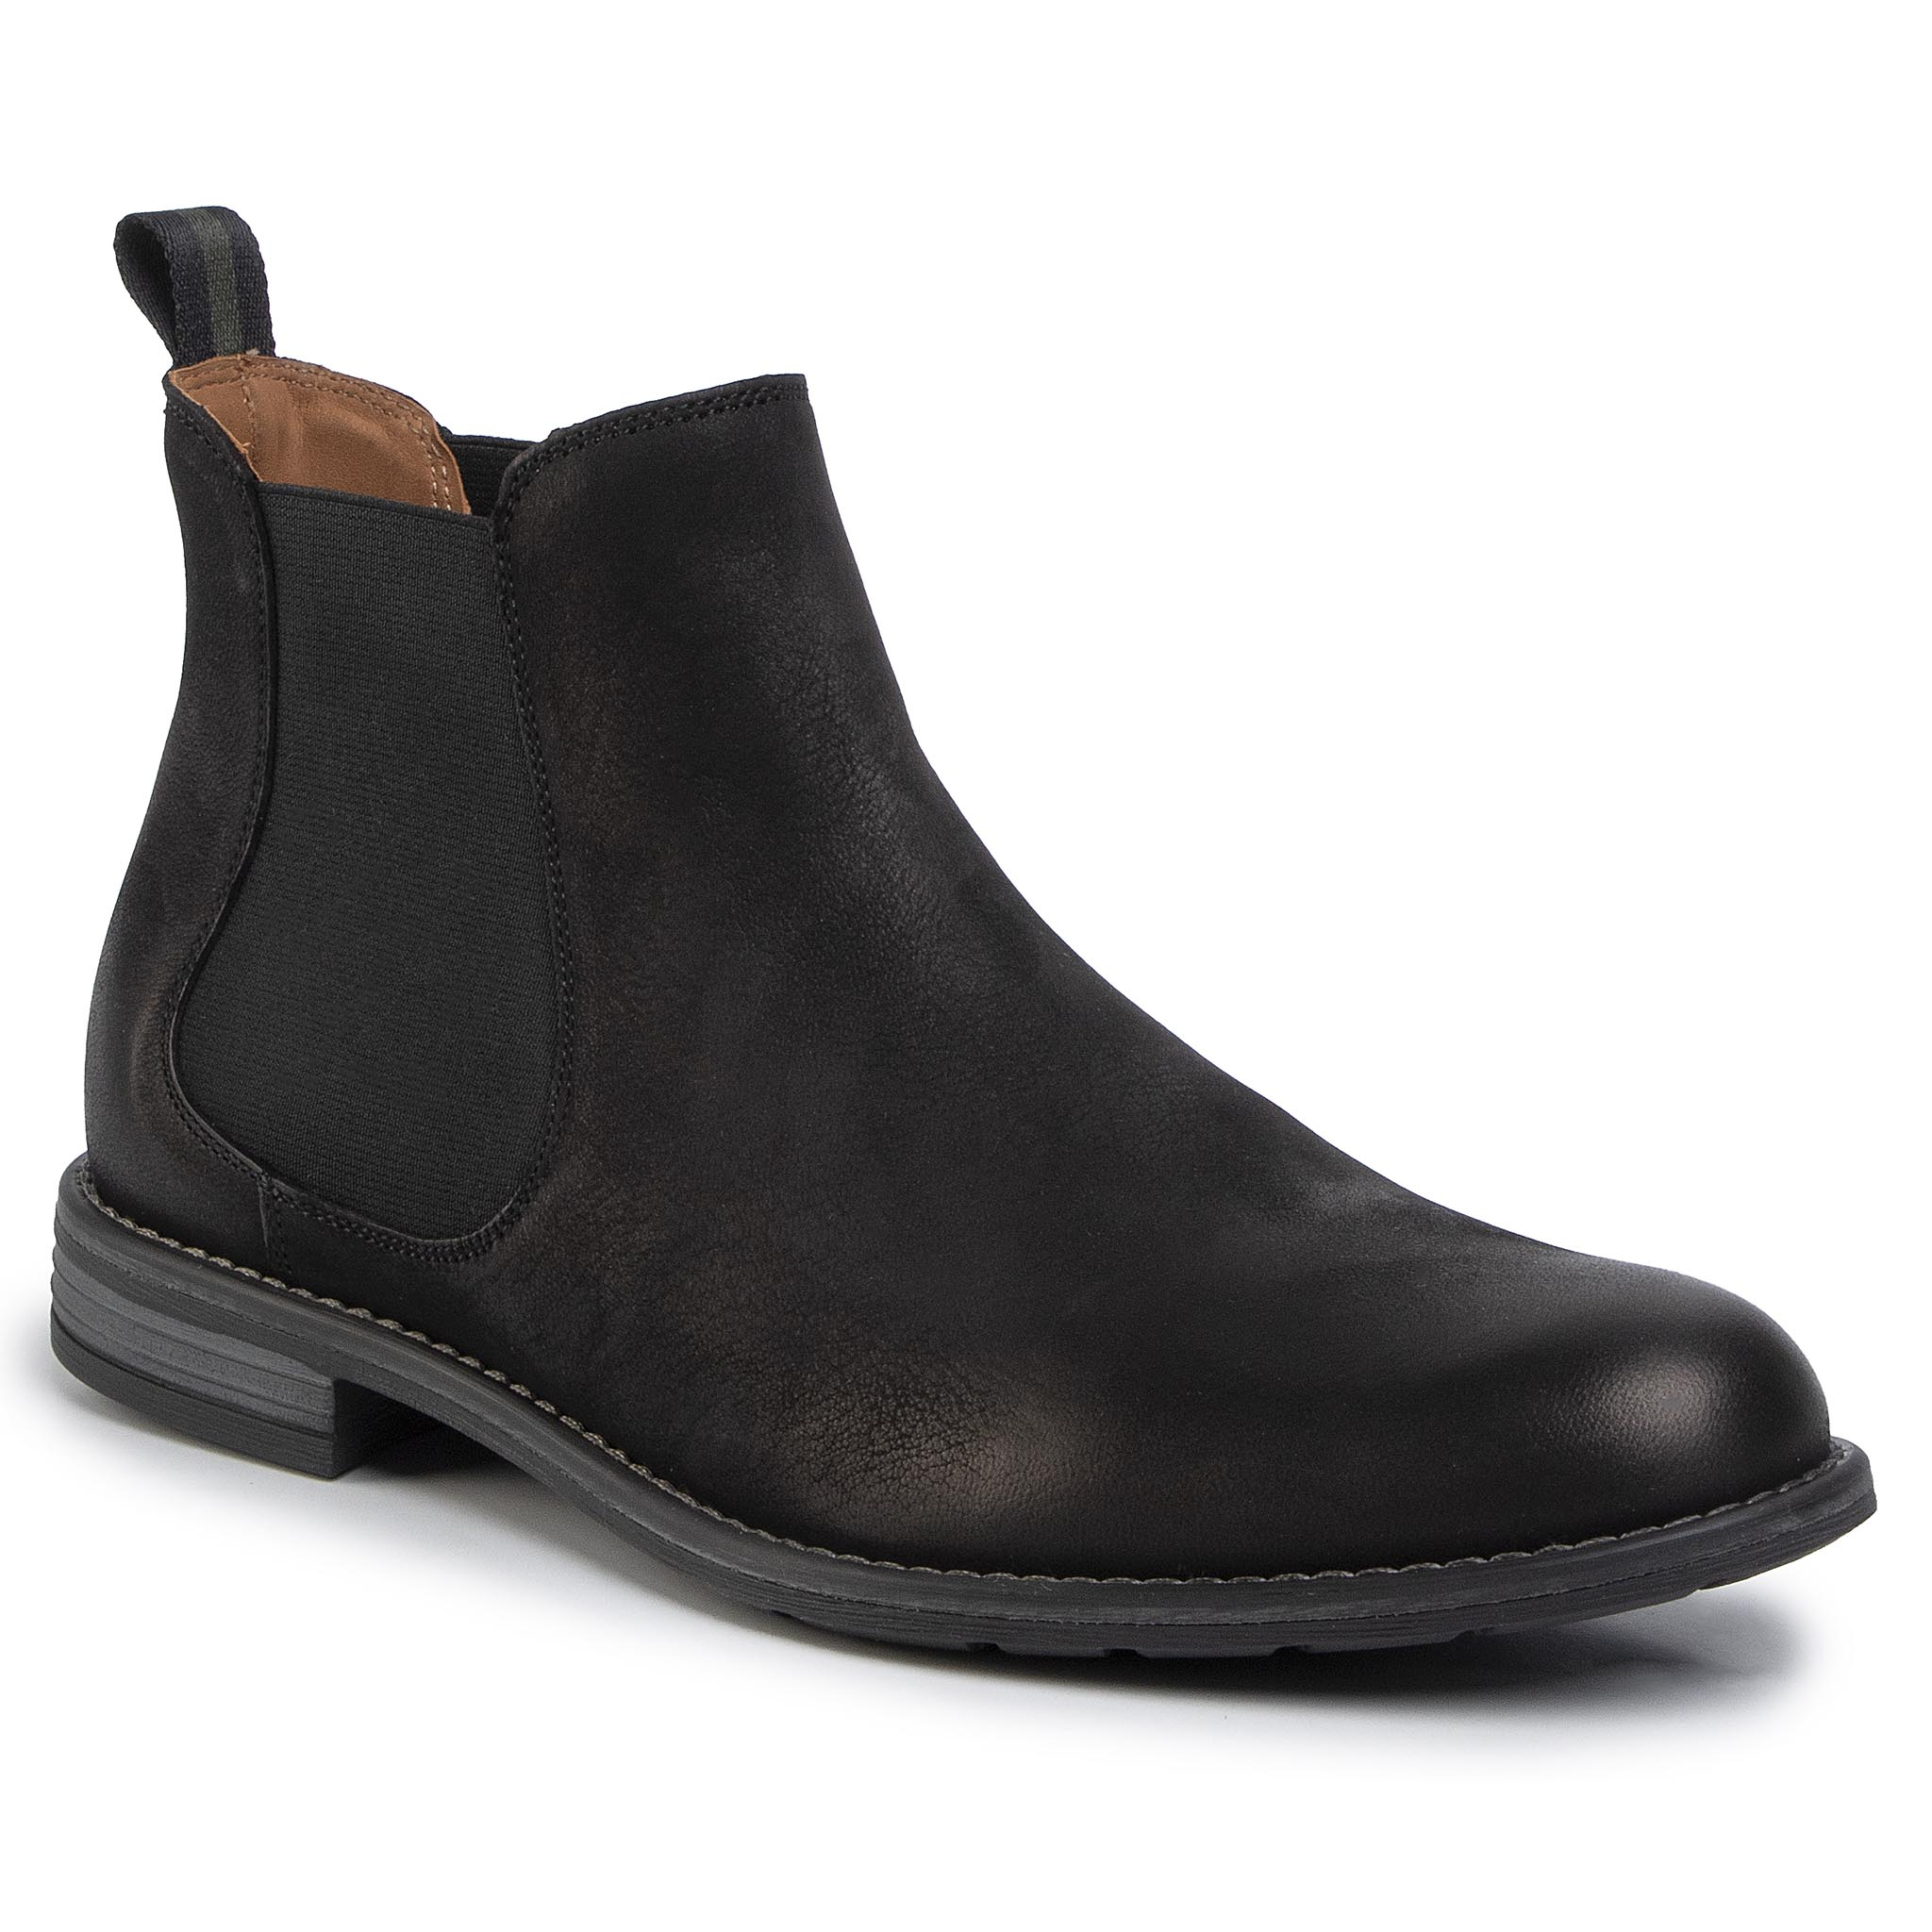 Ghete Jodhpur Gino Rossi - Aldo Msu376-S53-0736-9900-0 99 imagine